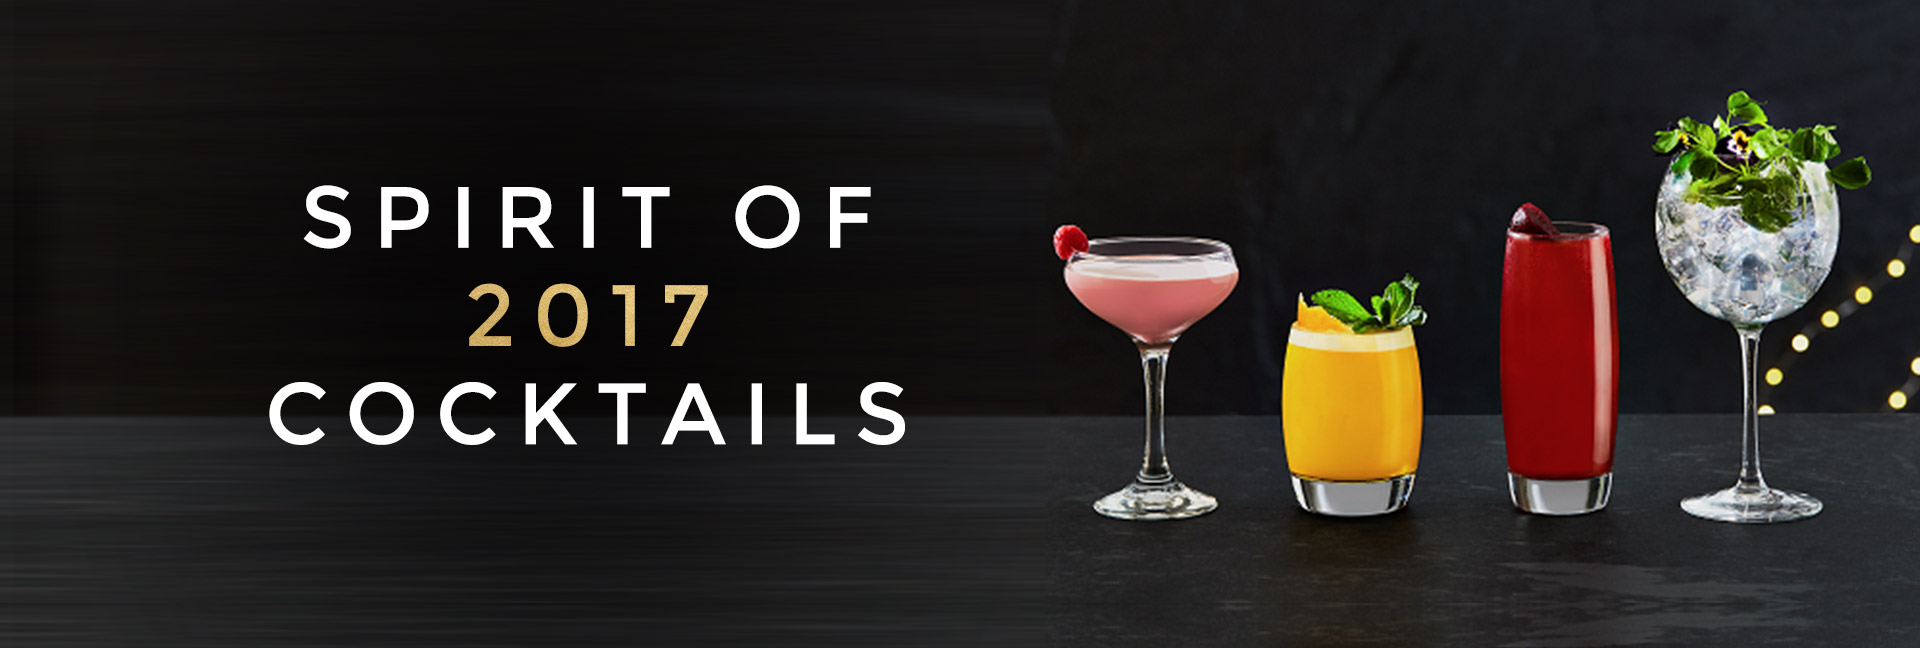 Spirit of 2017 cocktails at All Bar One Liverpool